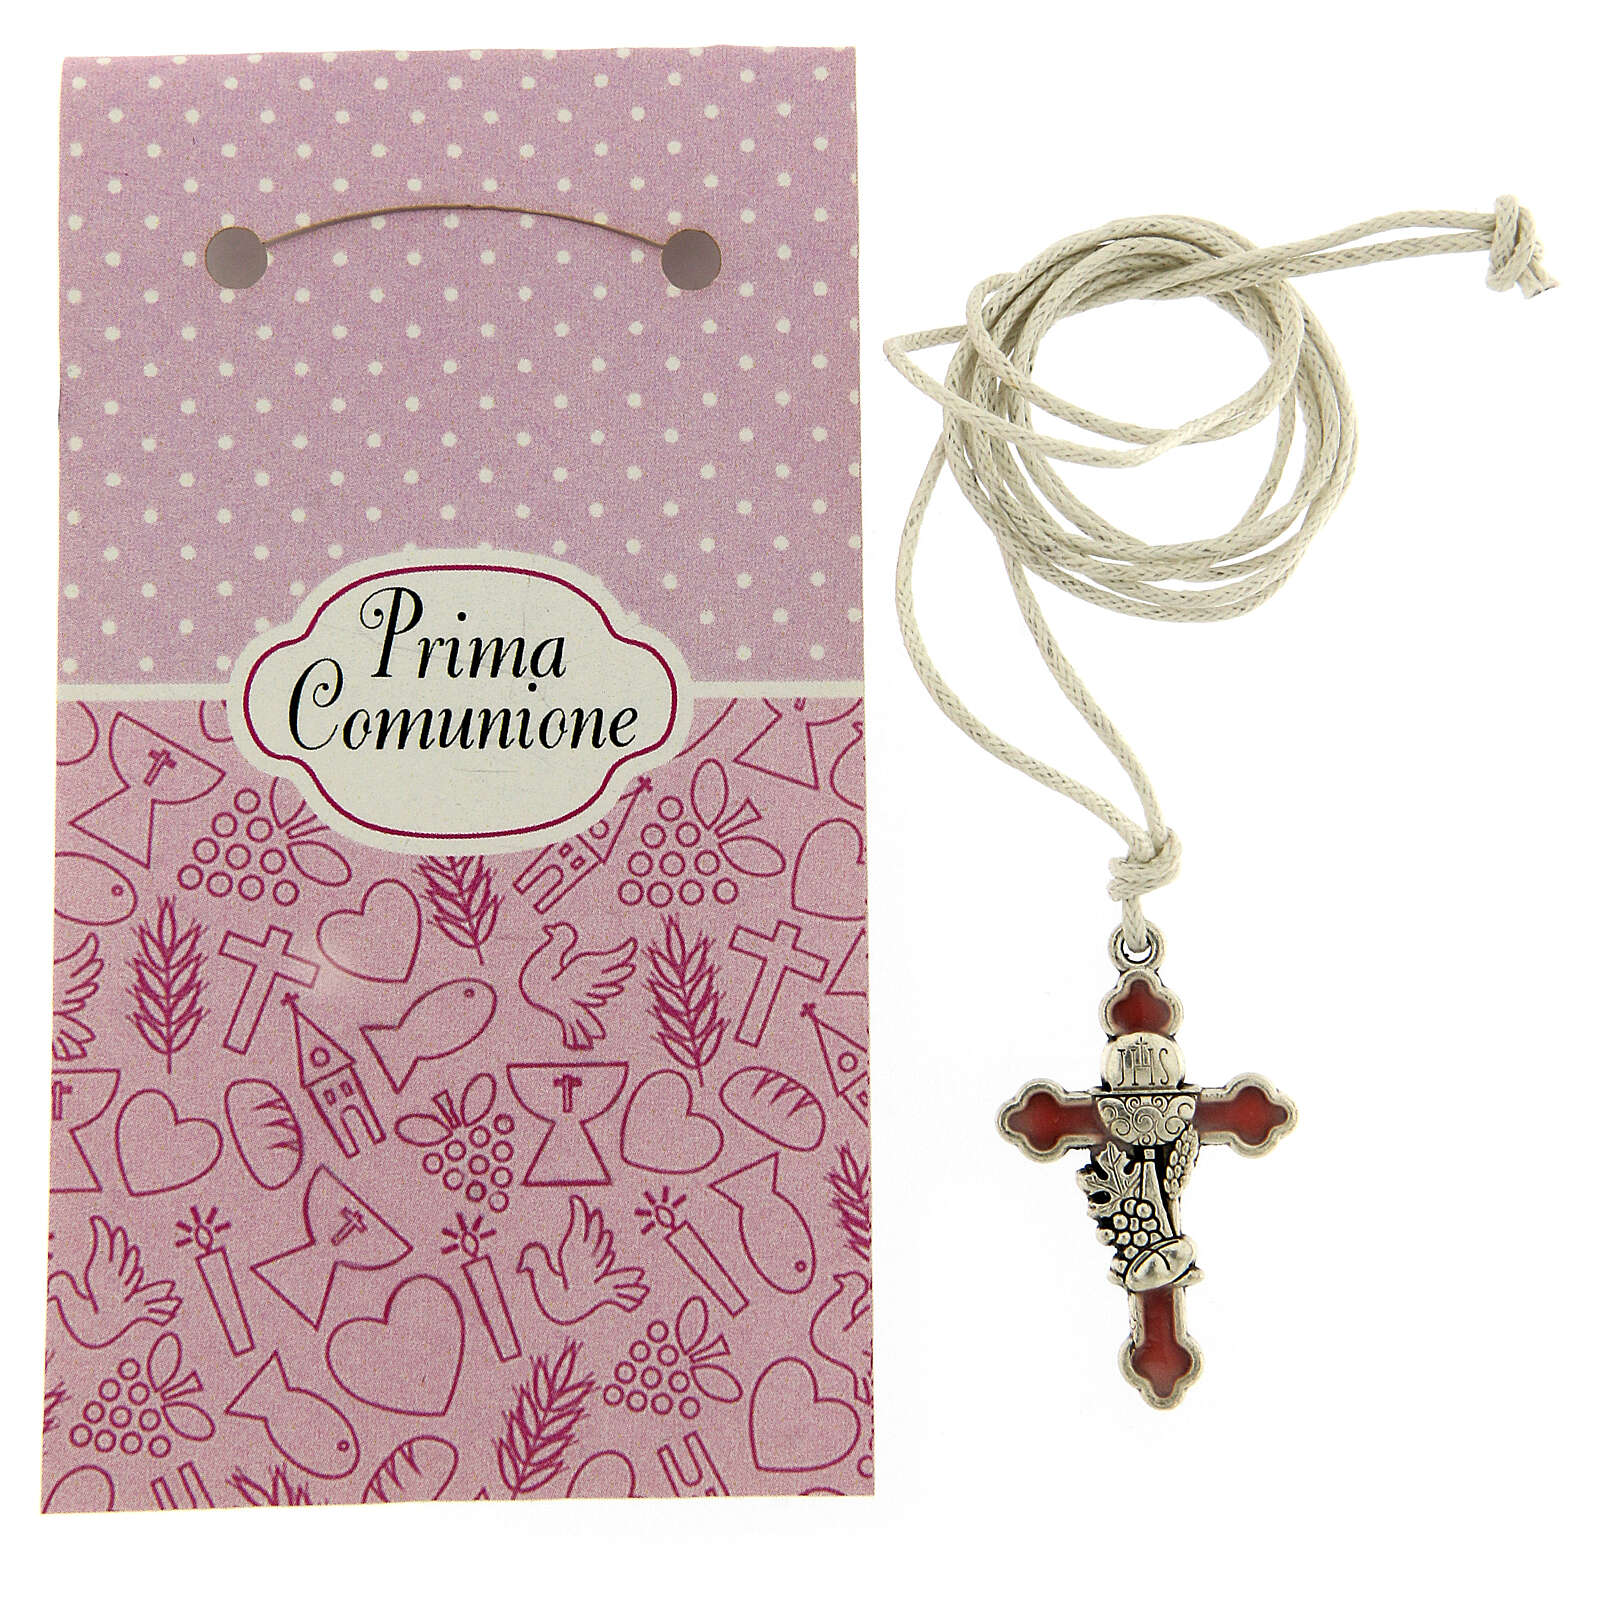 Communion cross pendant pink enamel 3